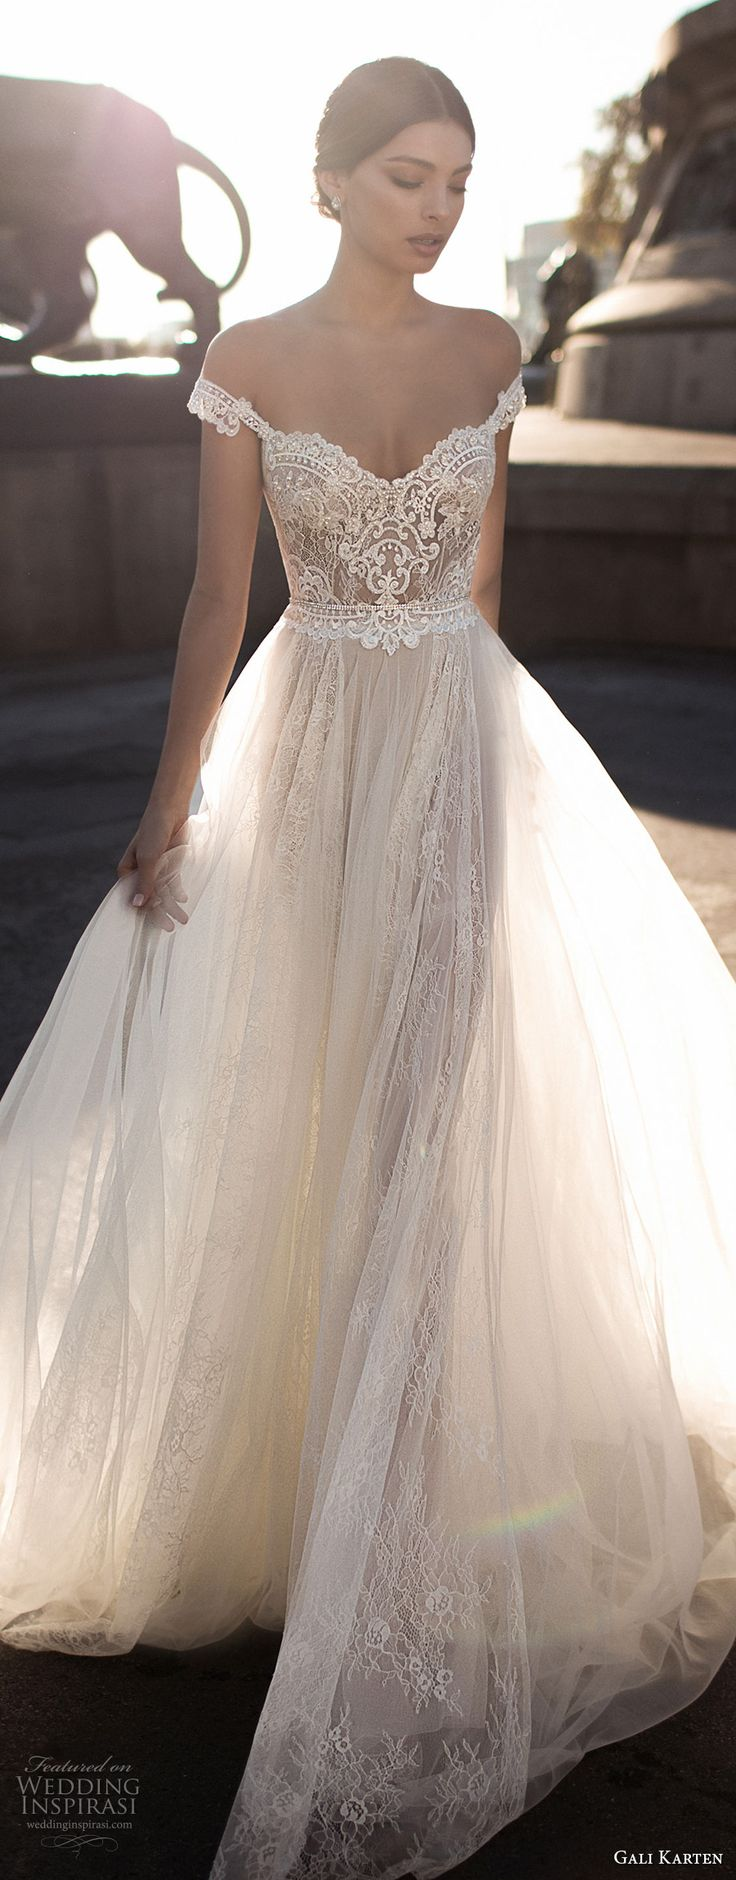 Best 25+ Wedding dresses ideas on Pinterest | Bridal ...